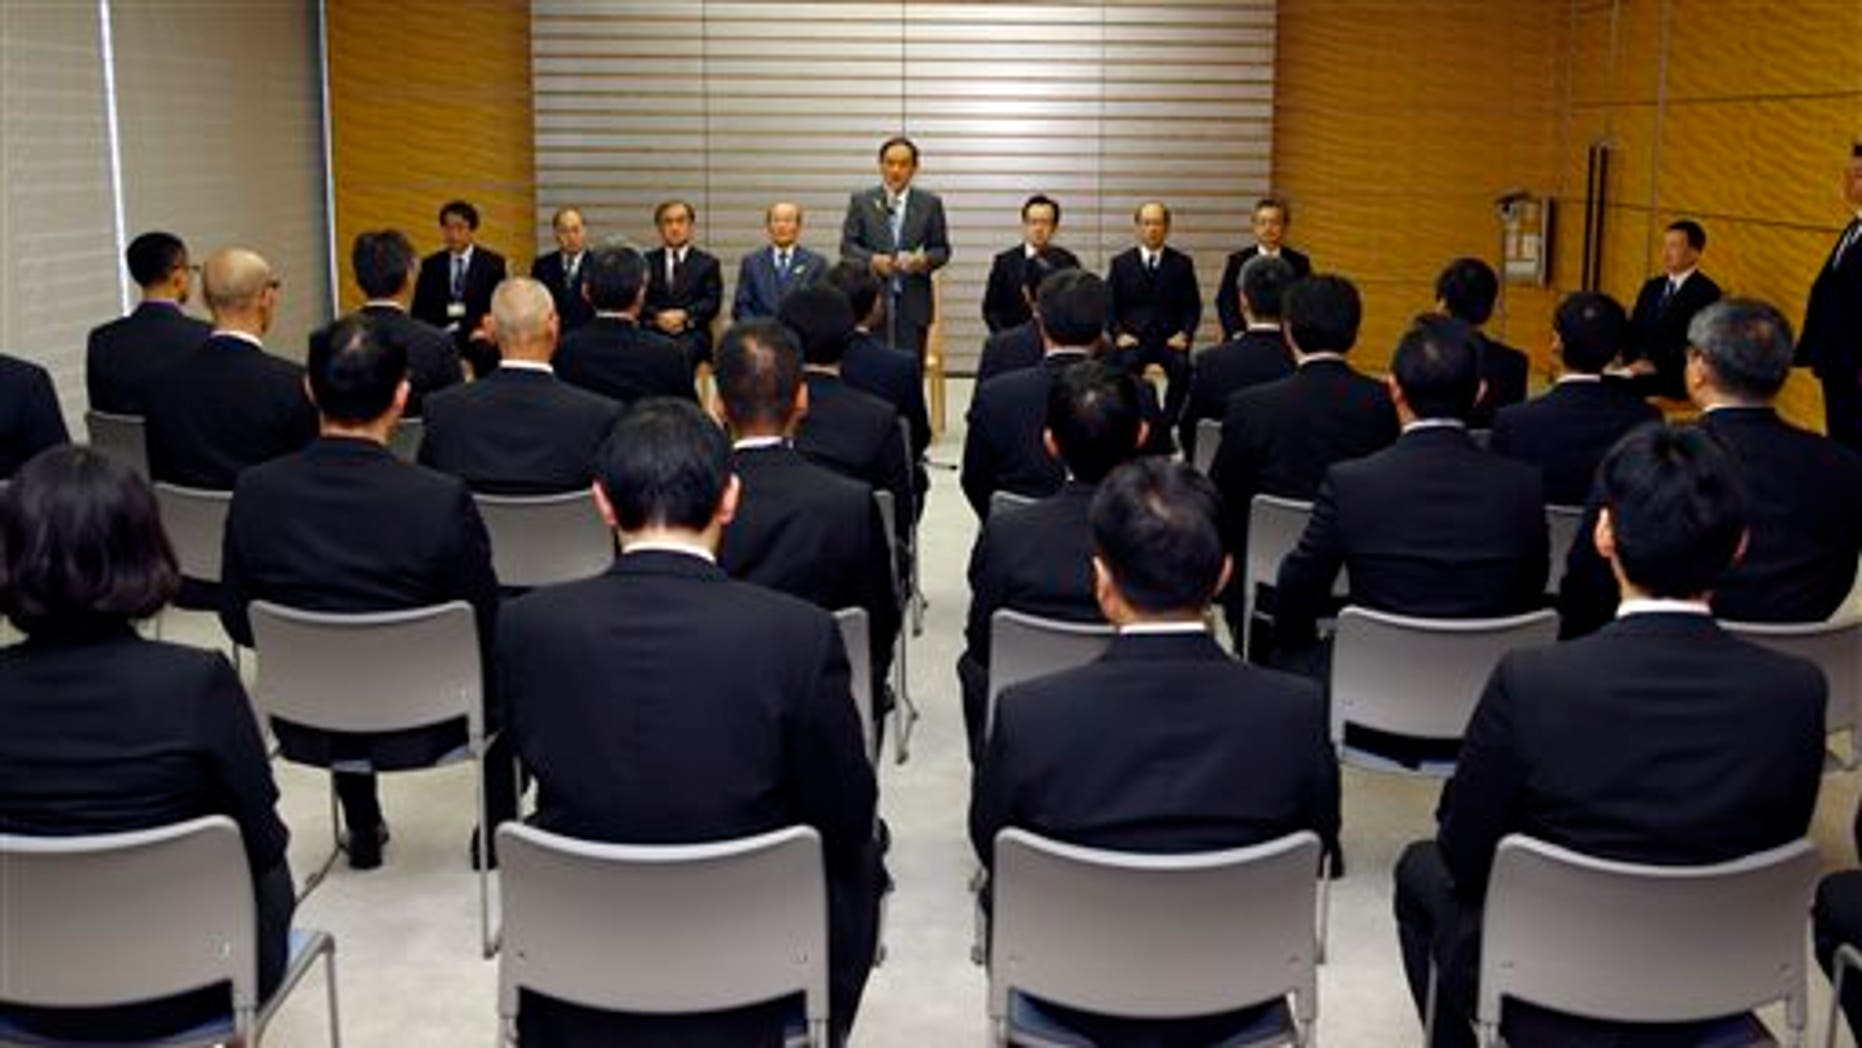 Japanese Chief Cabinet Secretary Yoshihide Suga, rear center, speaks during a ceremony to launch a special intelligence unit at the prime minister's official residence in Tokyo, Tuesday, Dec. 8, 2015. Japan launched on Tuesday the specialized intelligence unit within the Foreign Ministry as the government steps up counter-terrorism in preparation to host a Group of Seven summit next year and the Olympic Games in Tokyo in 2020. (AP Photo/Shizuo Kambayashi, Pool)